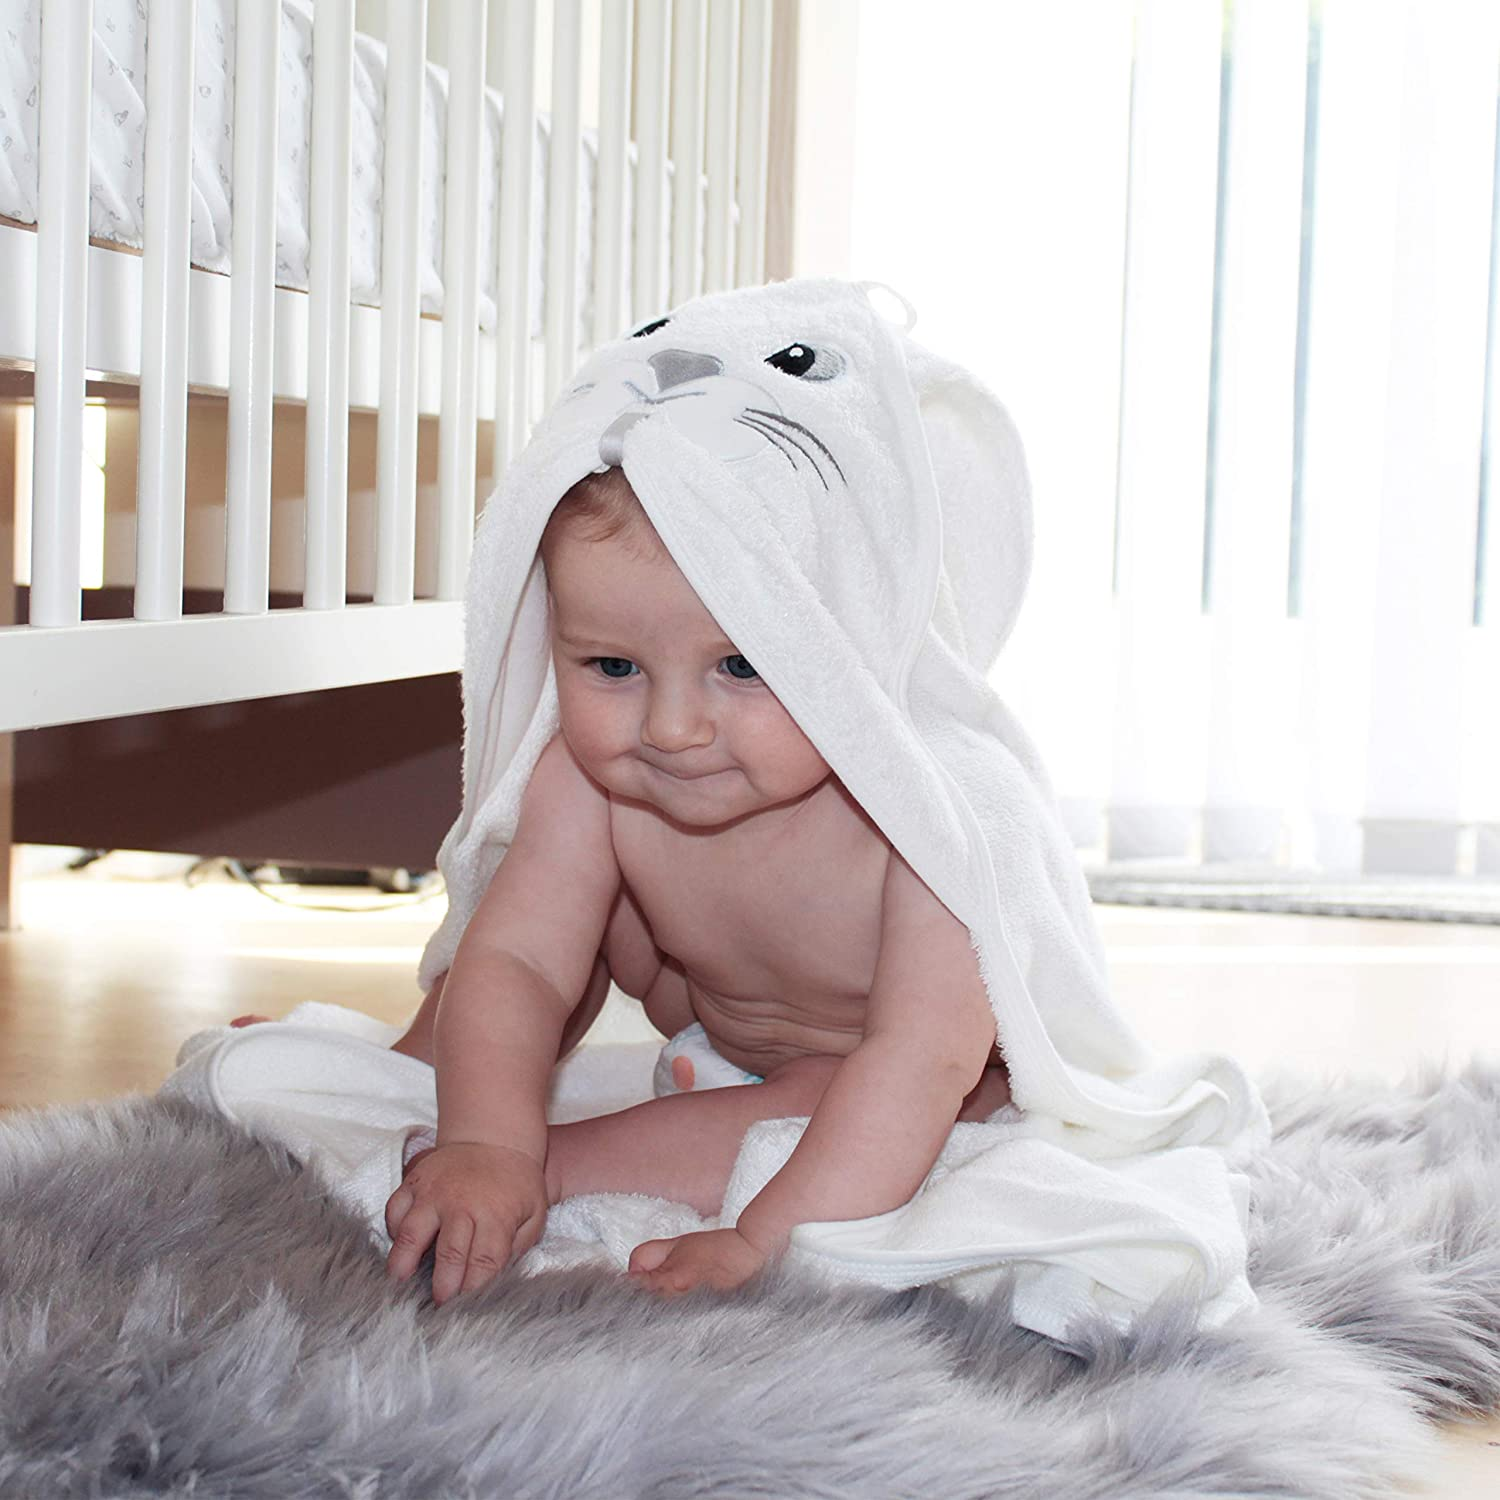 Bamboo Hooded Baby Towel Set – Bunny Design | Baby Bath Hood Towels with Baby Safety Blanket Unisex – Organic Bamboo Perfect Gift for Boys and Girls - Soft for Newborns, Infants and Babies